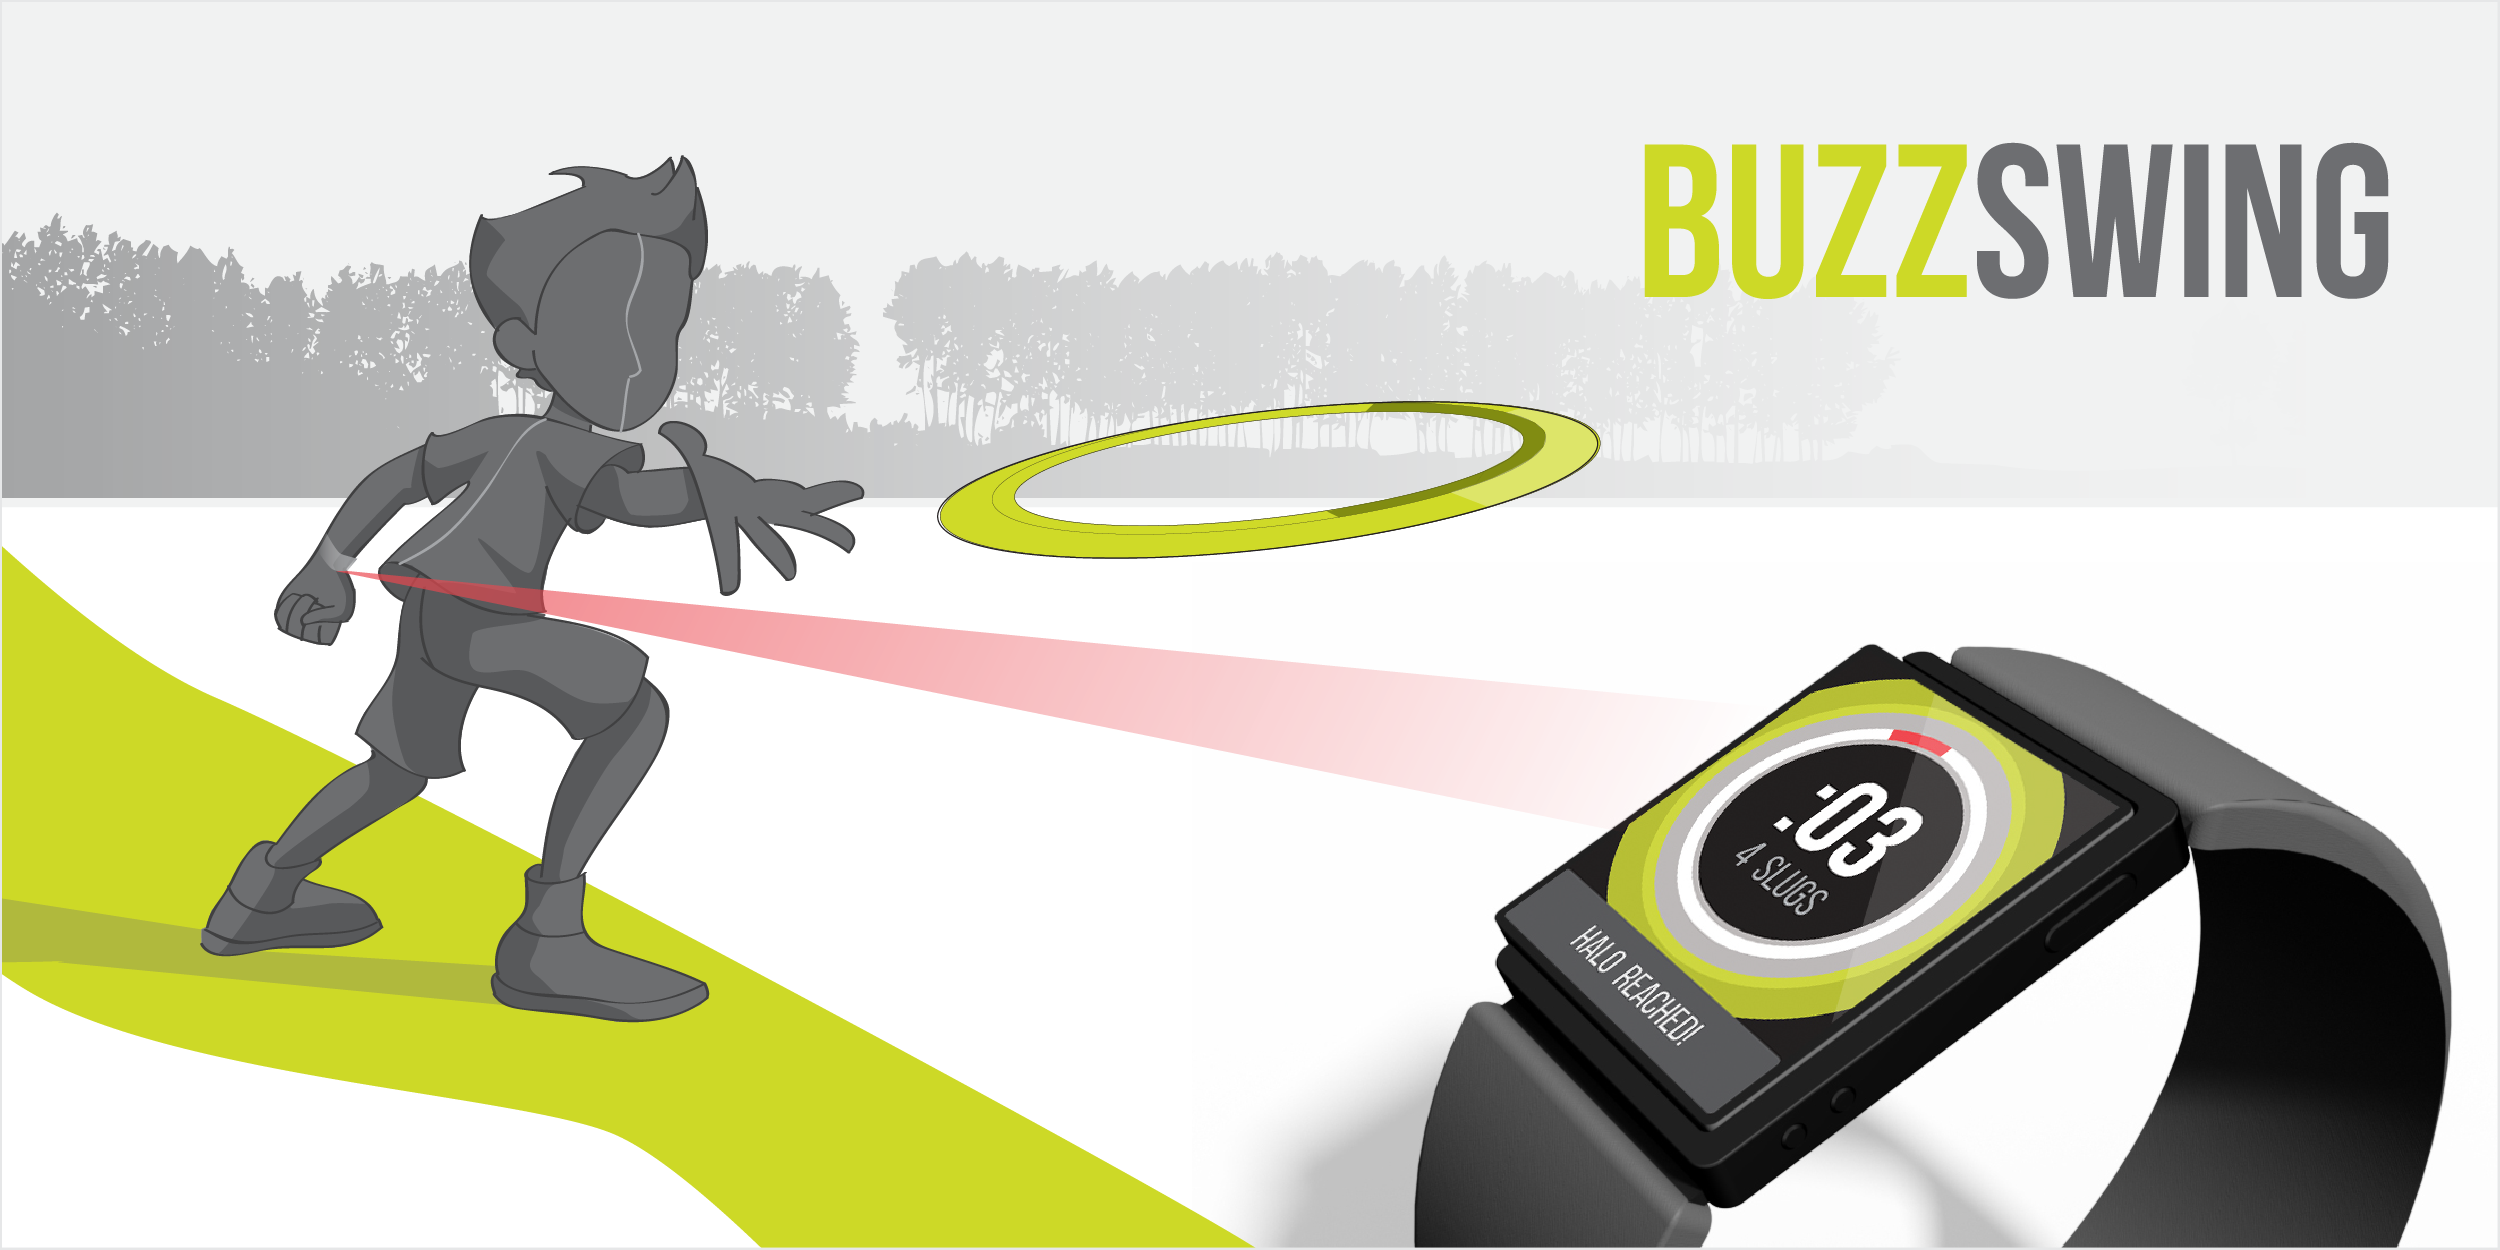 BuzzSwing Golf \ Product Design Masters Thesis: May 2014